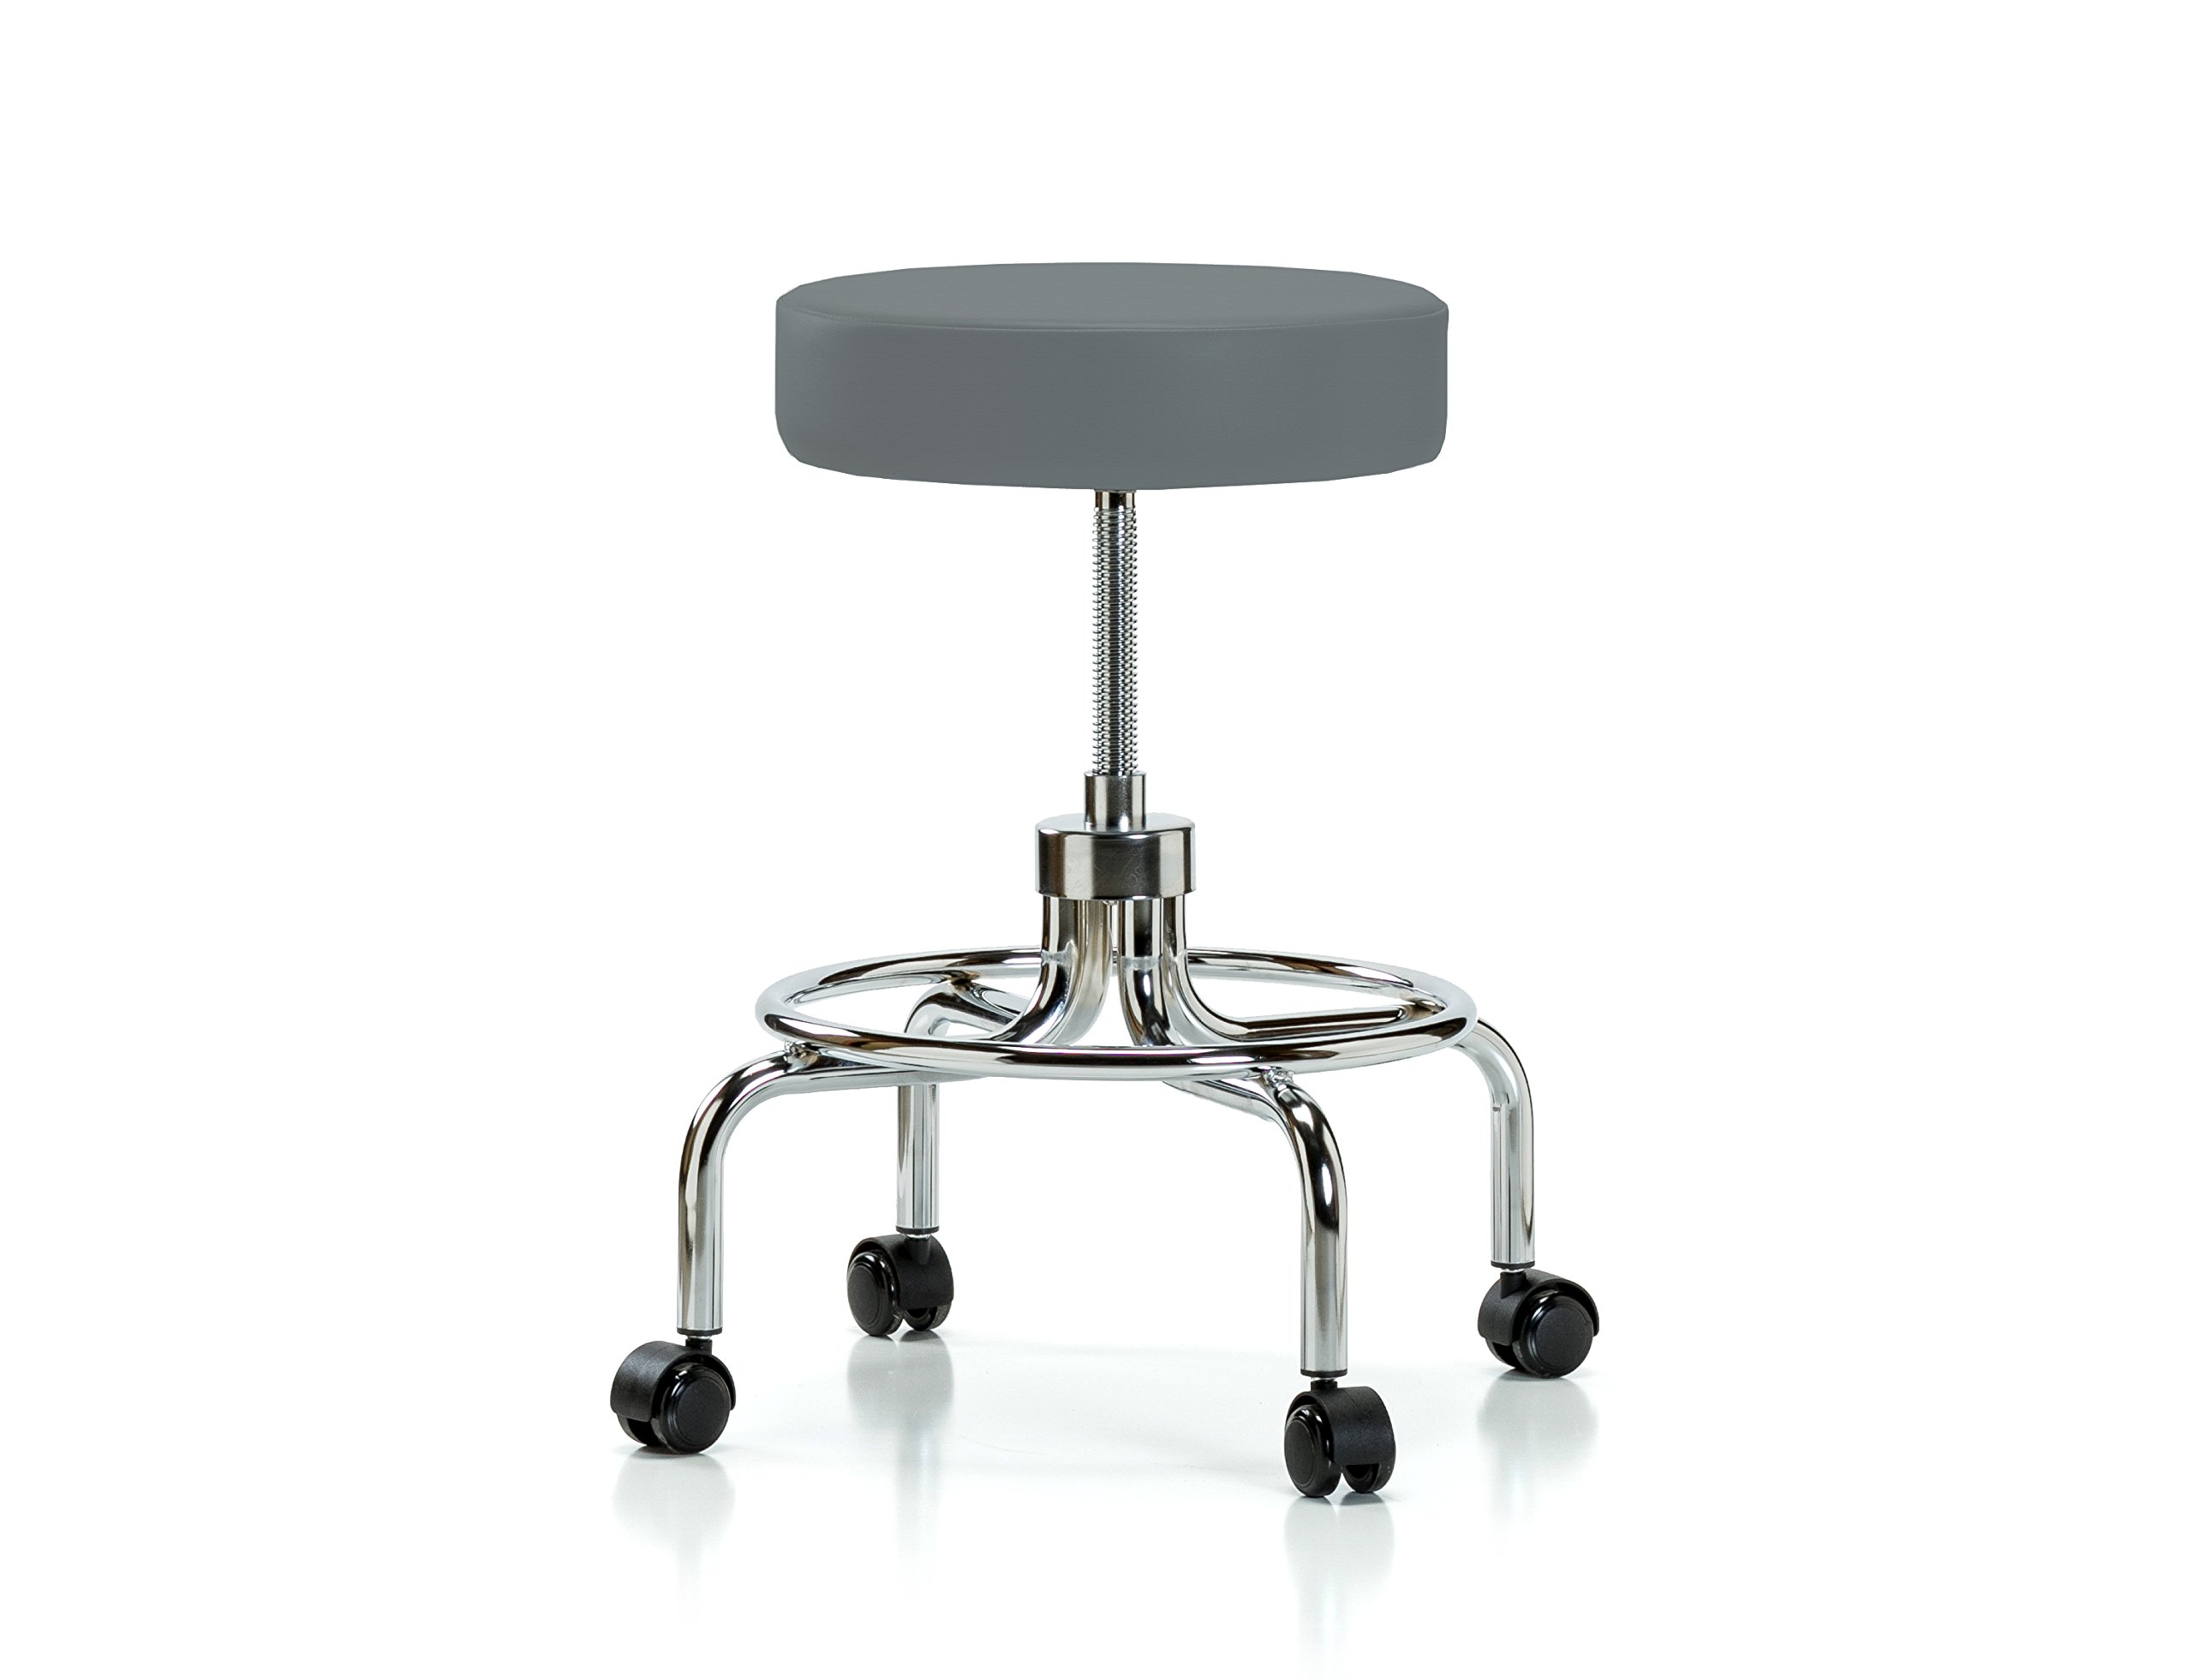 Perch Retro Rolling Exam Stool with Wheels for Hardwood or Tile Floors, Cinder Fabric